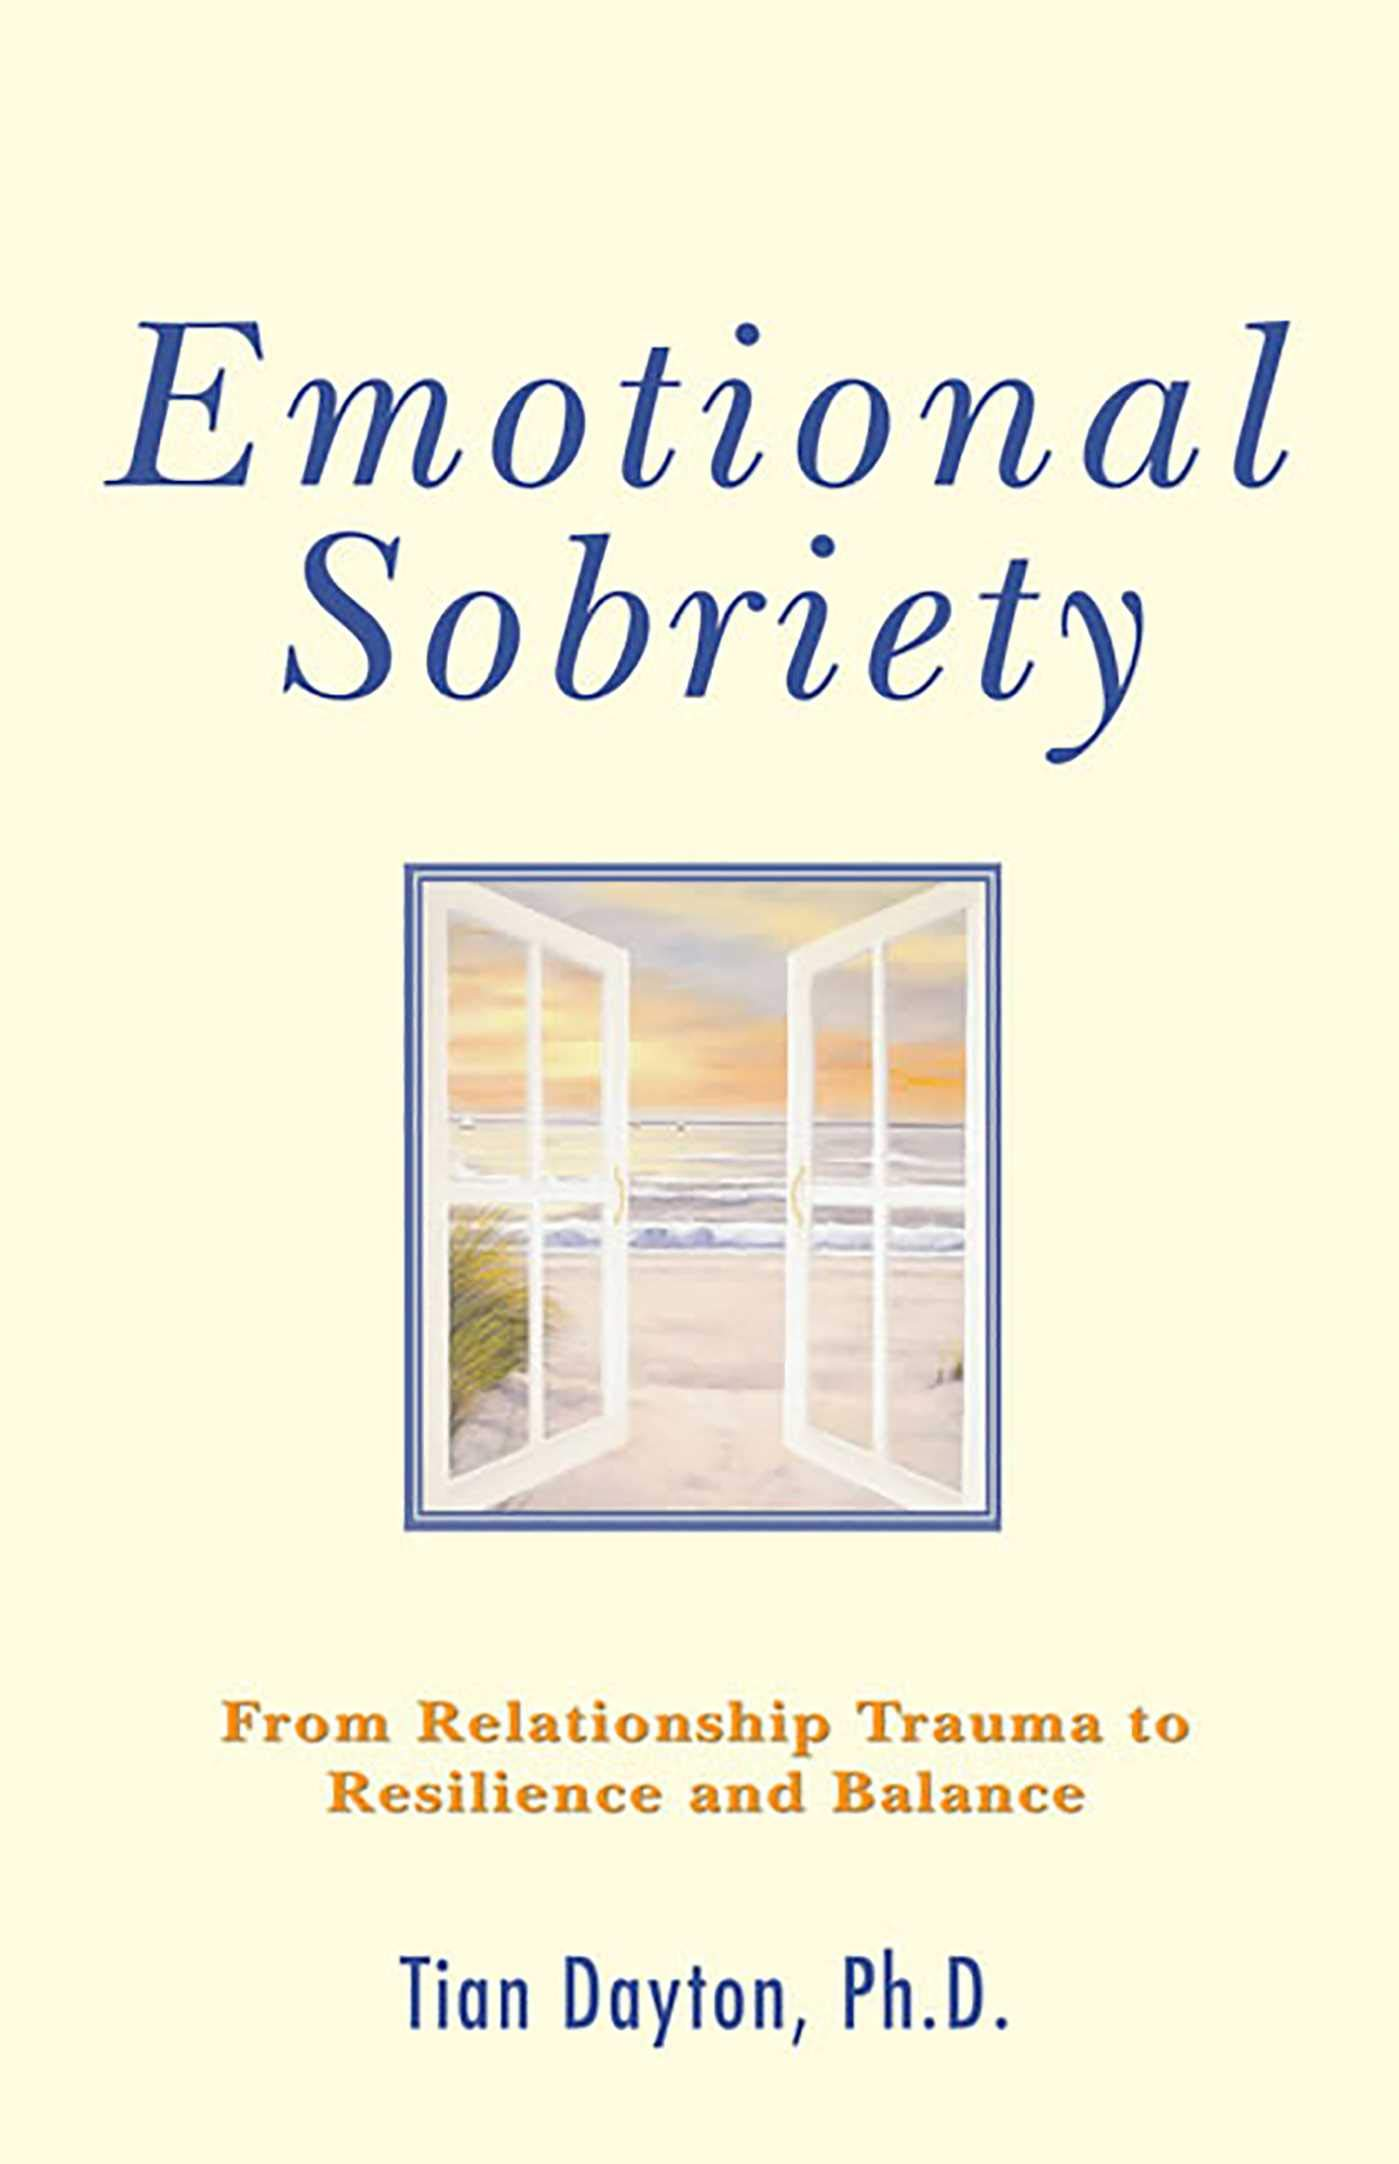 Emotional Sobriety: From Relationship Trauma To Resilience And Balance:  Tian Dayton: 9780757306099: Amazon.com: Books